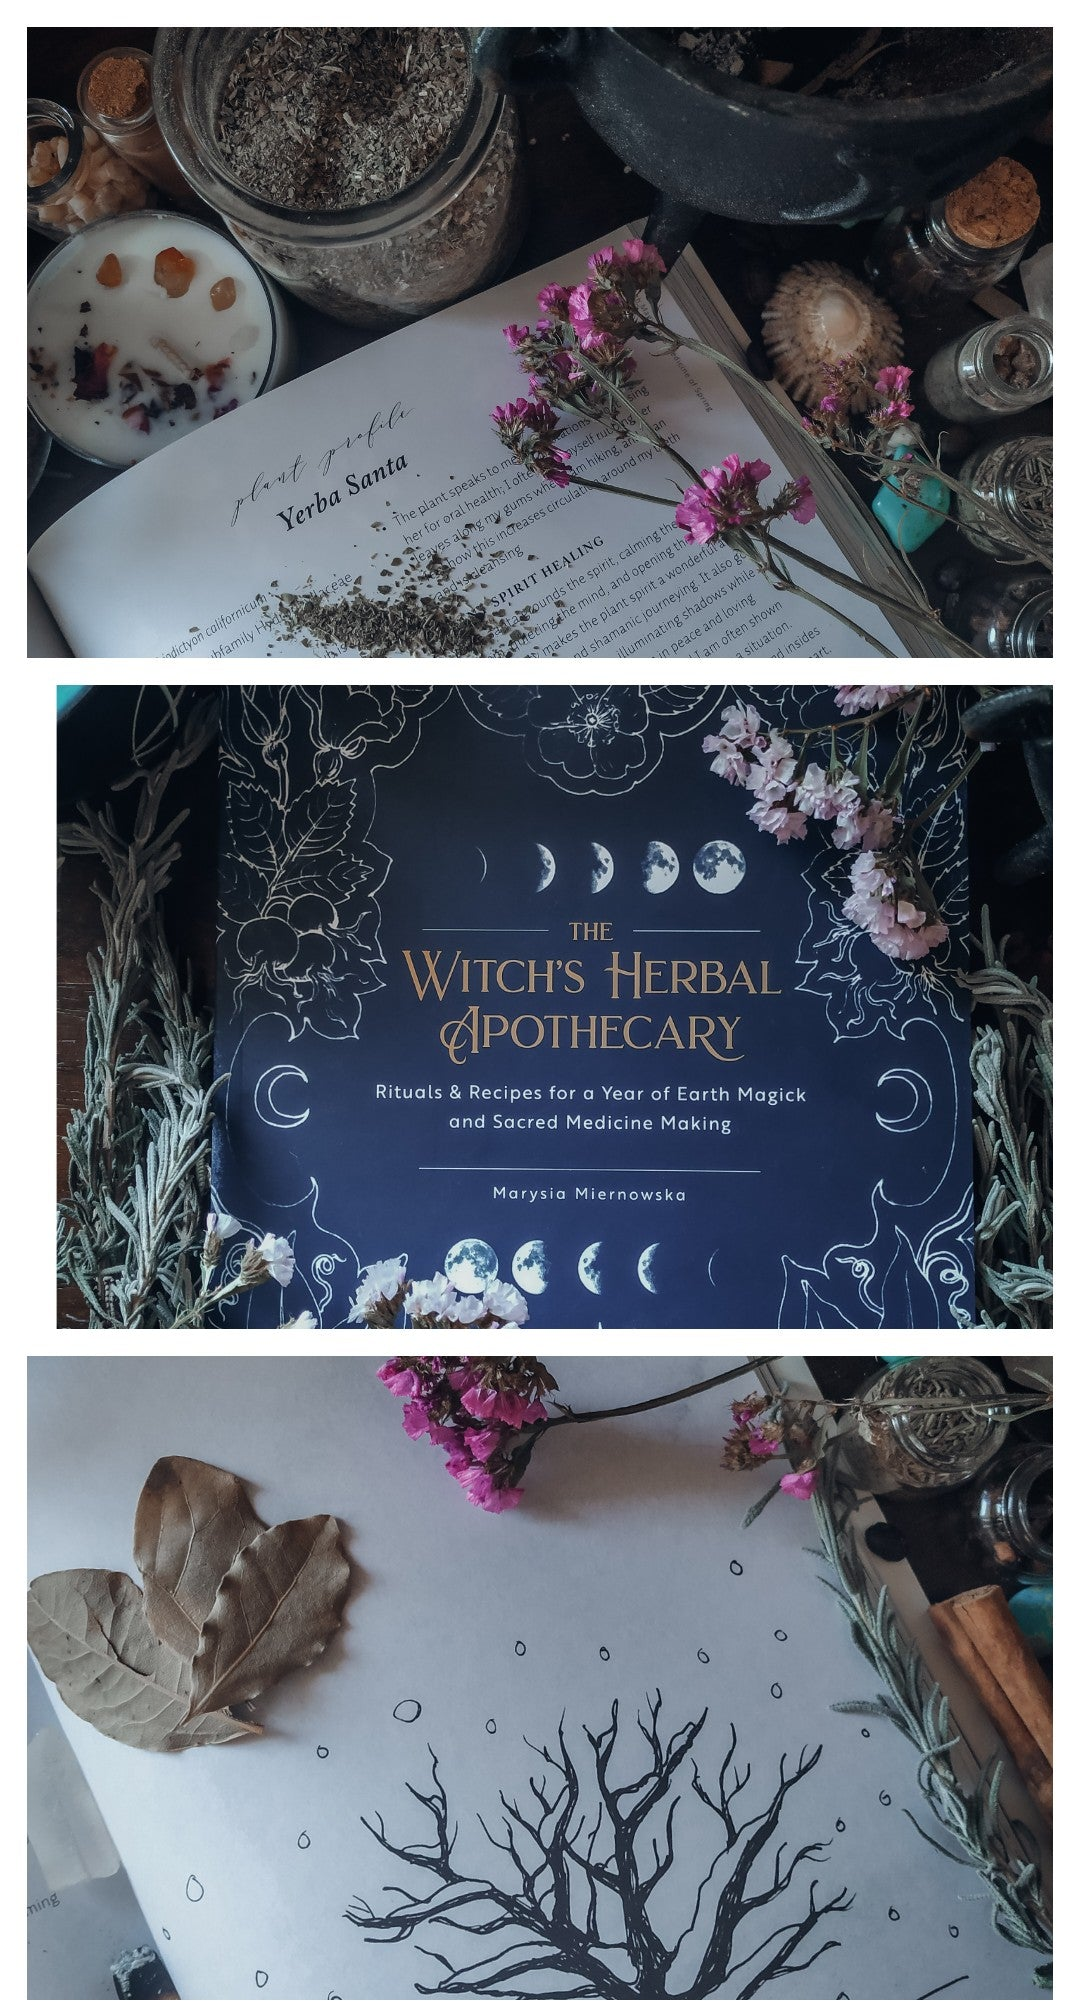 The Witch's Herbal Apothecary (Marysia Miernowska)